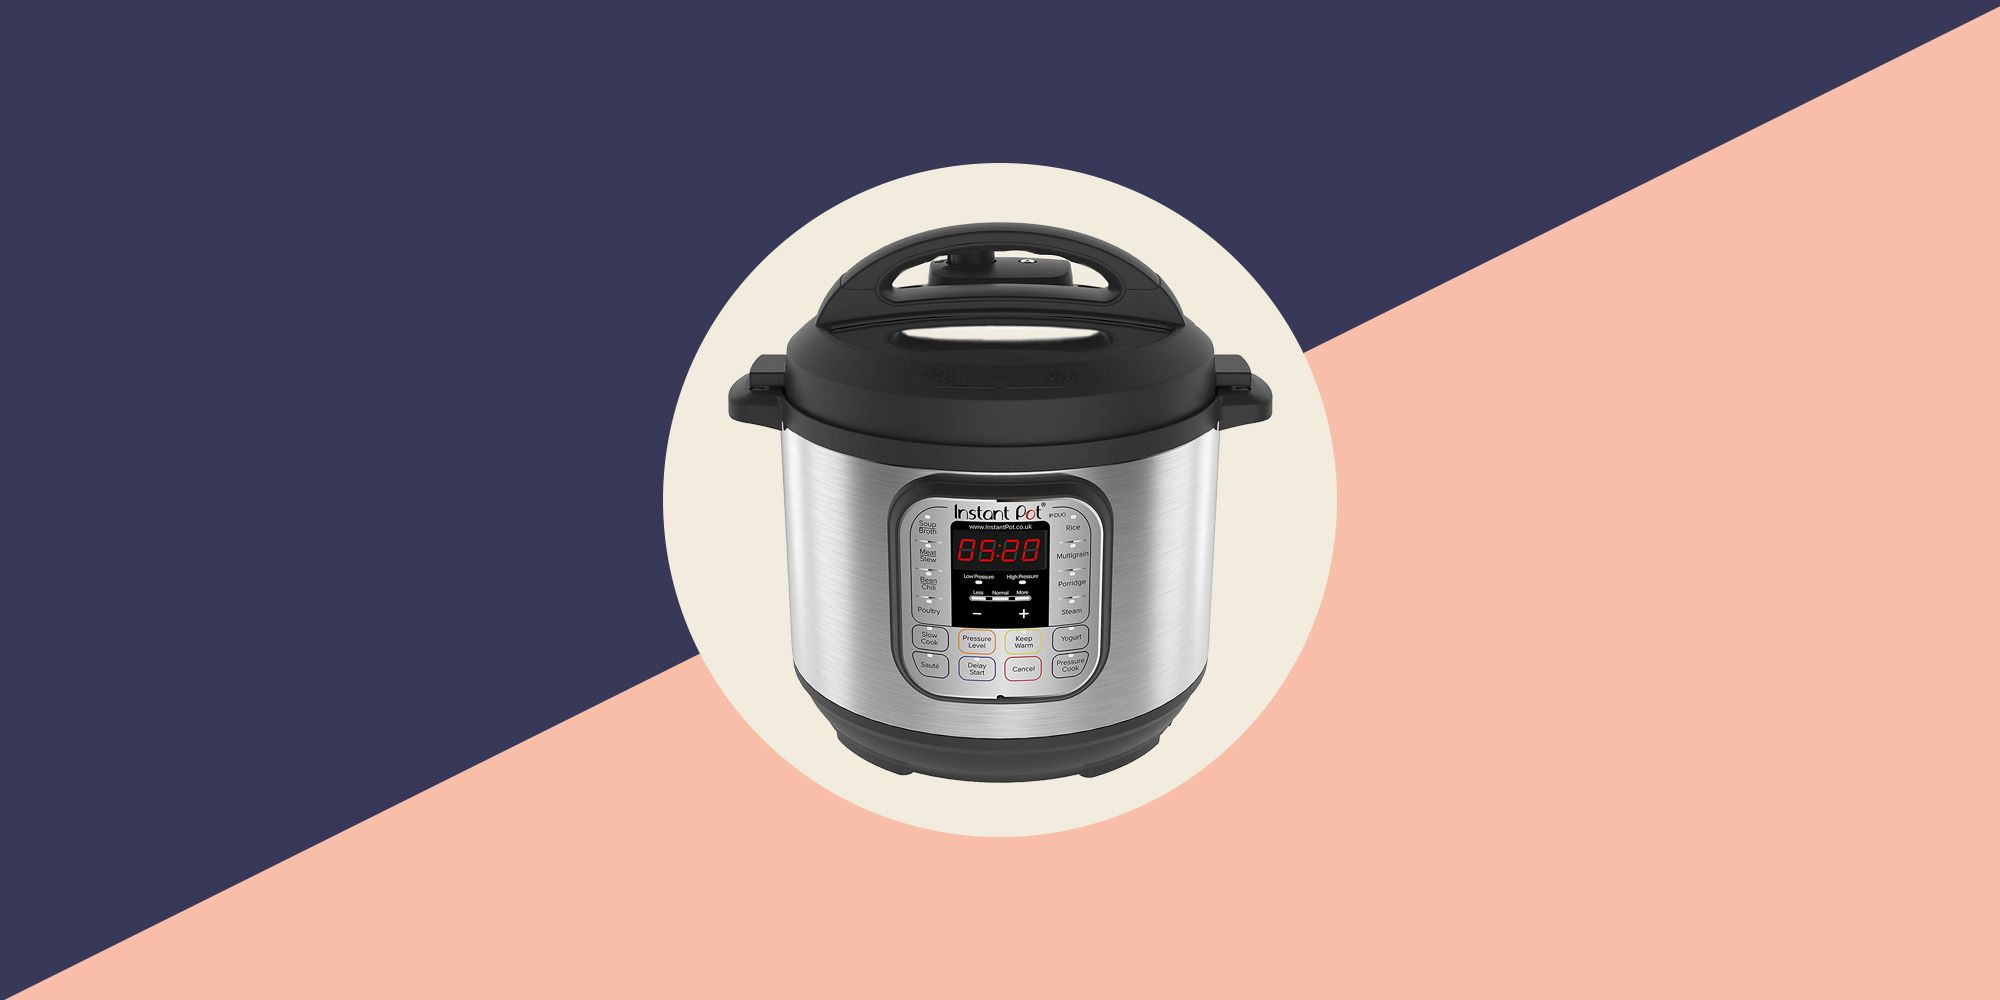 The Instant Pot multi-function cooker is one of the biggest Amazon Prime Day steals